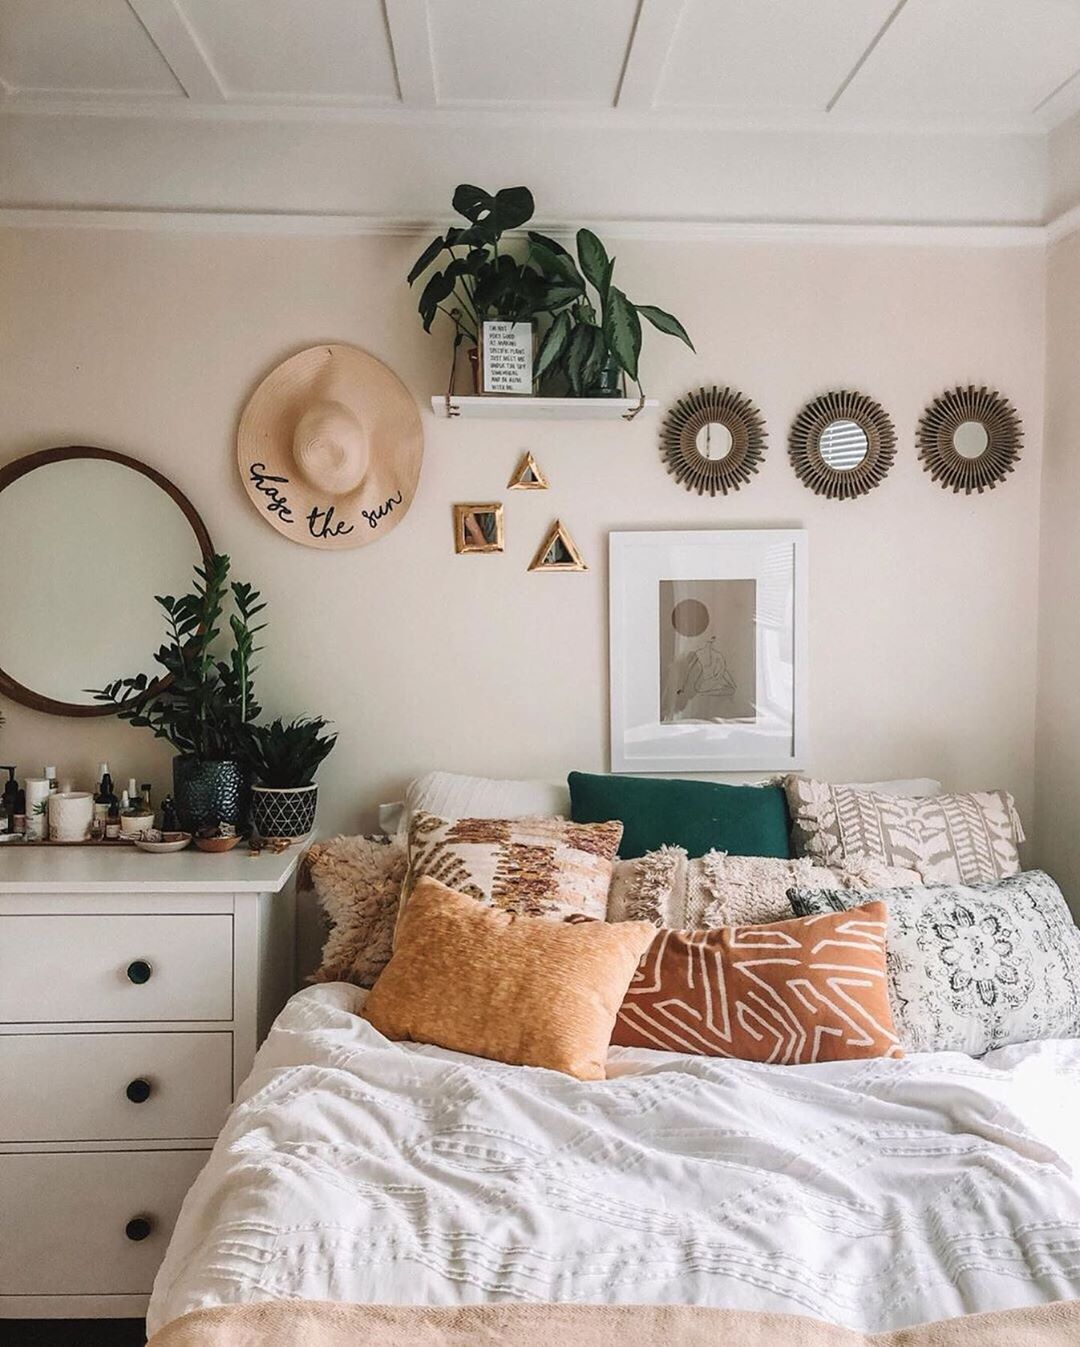 """The Sill on Instagram: """"Guide to refreshing your bedroom for summer: lots of plants and pillows. �️: @rightfootcreative_"""""""